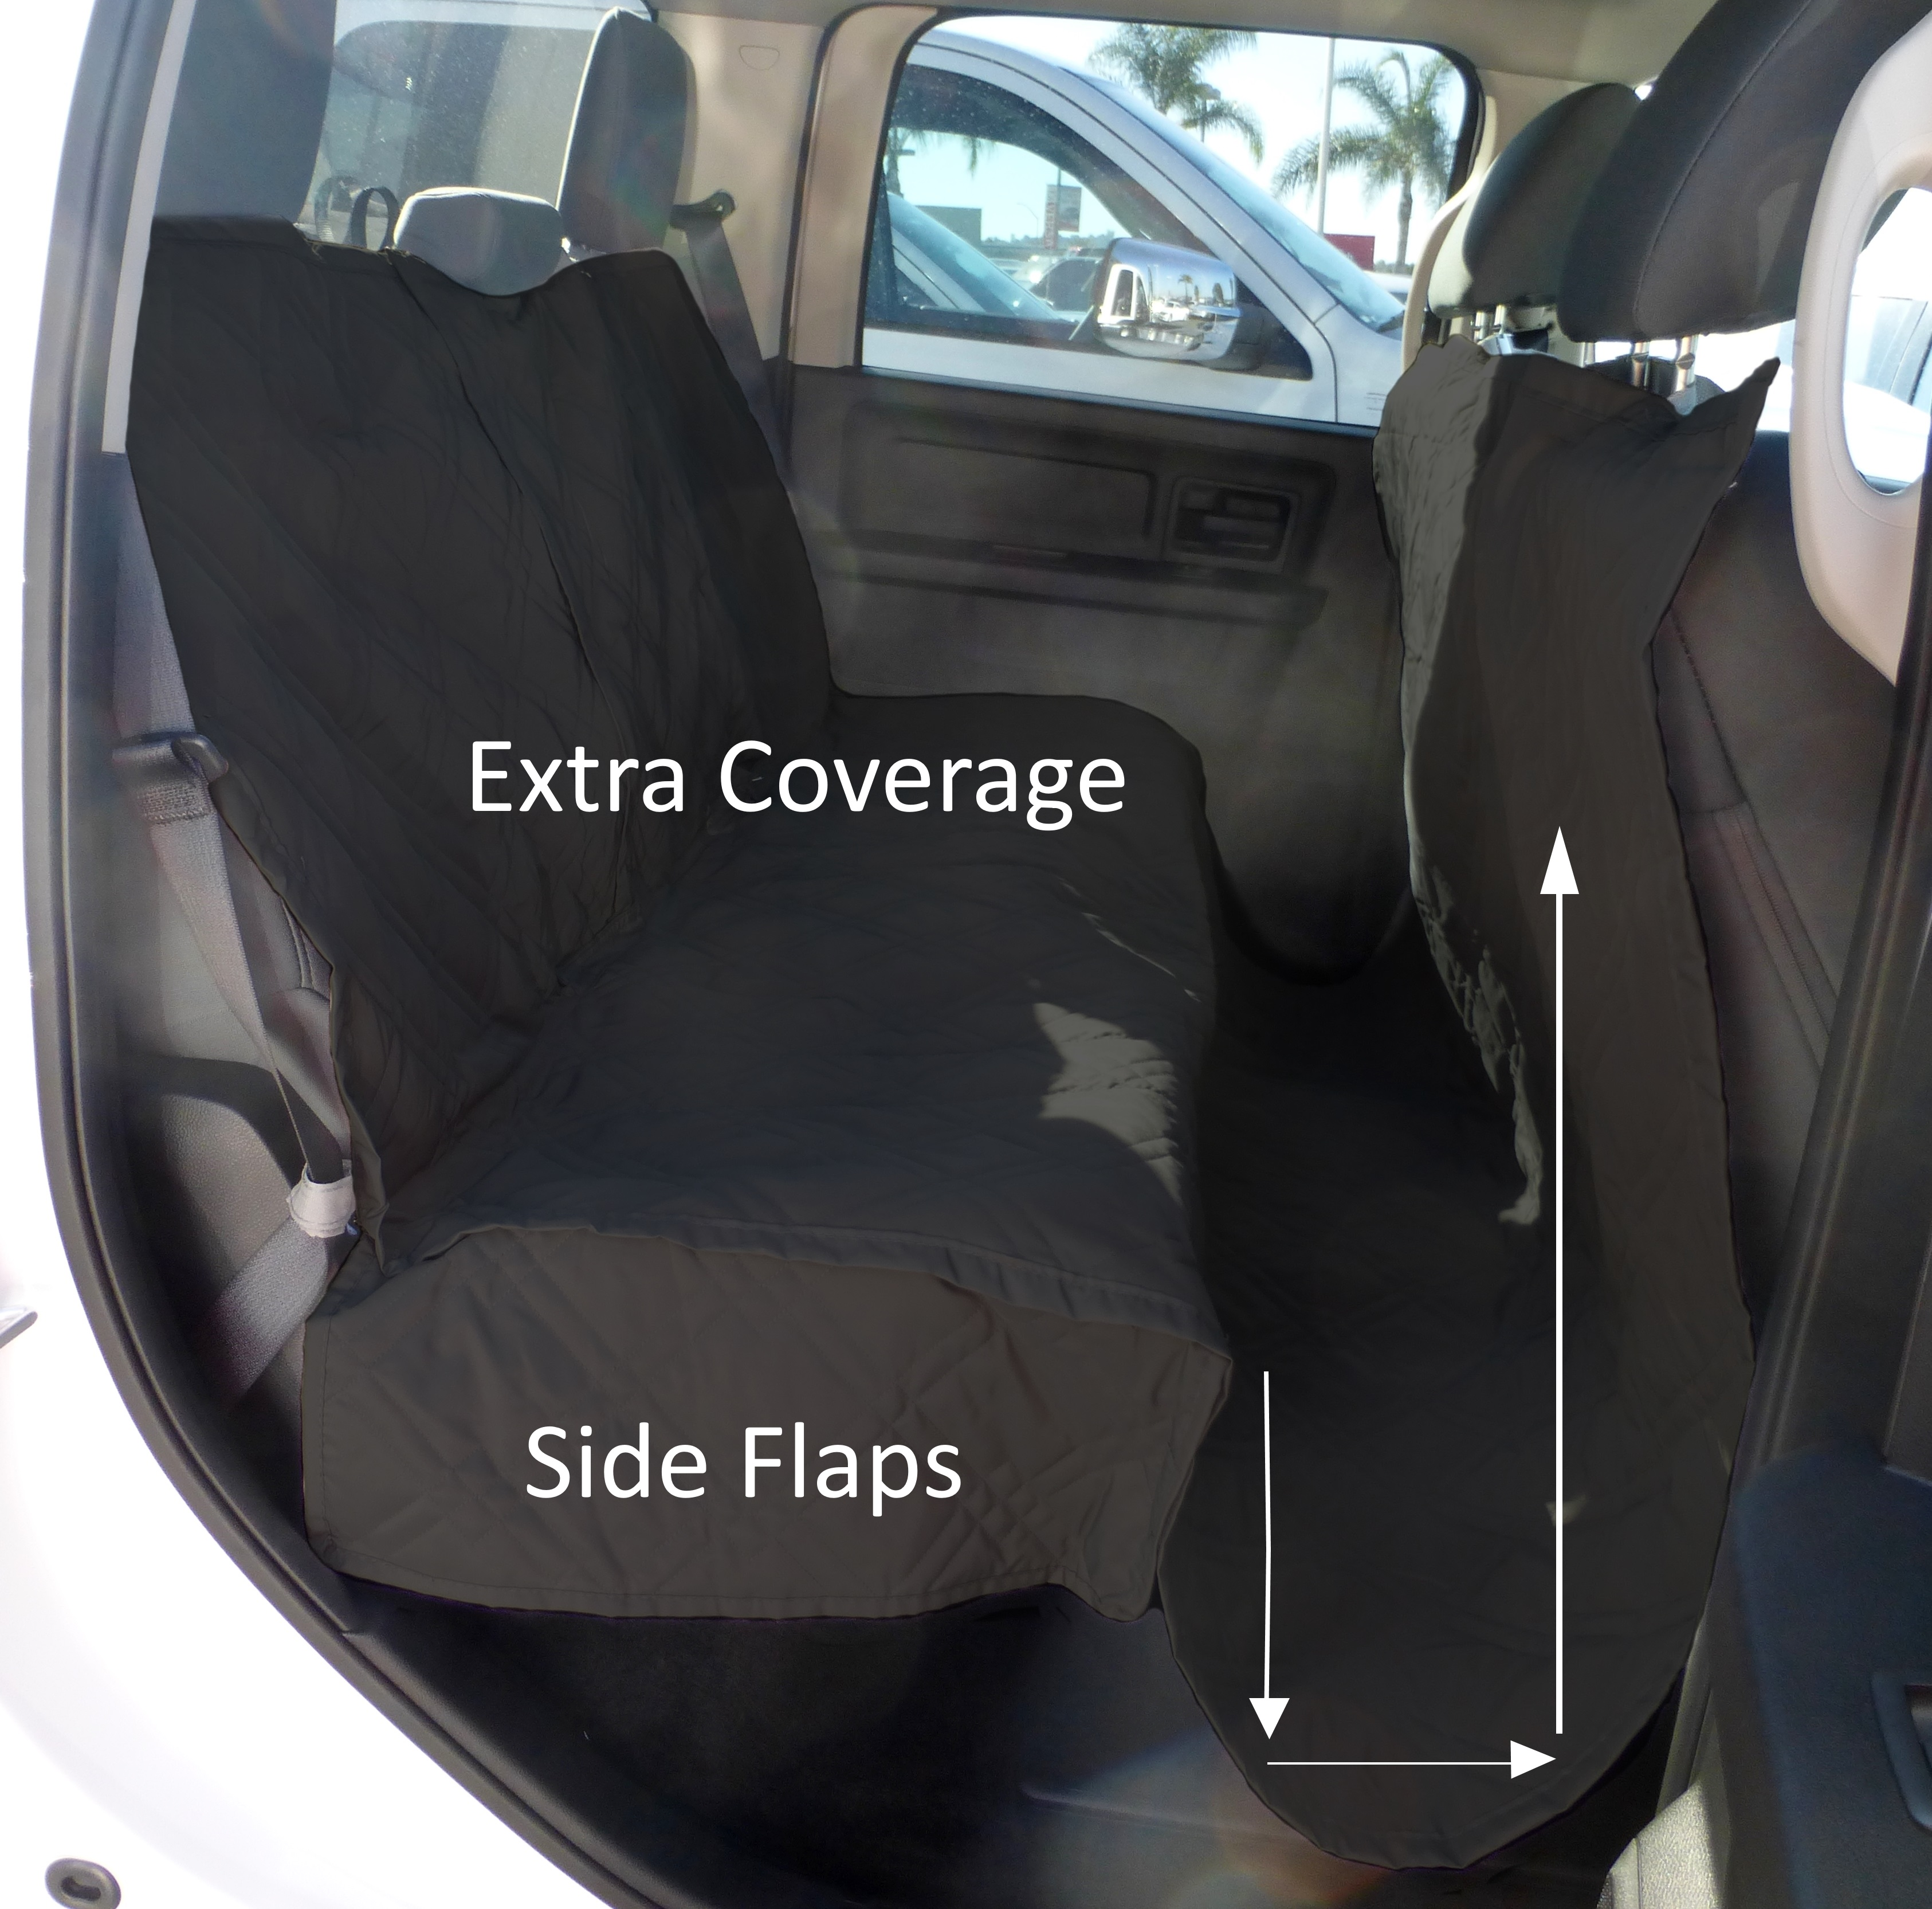 """Formosa Covers Deluxe Quilted and Padded Dog Pet Car Back Seat Cover with Comforting Fabric and Non-Slip Backing Best for Truck, SUV, Van- Travel With Your Pet Mess Free - EXTRA LARGE 62""""x94"""", BLACK"""